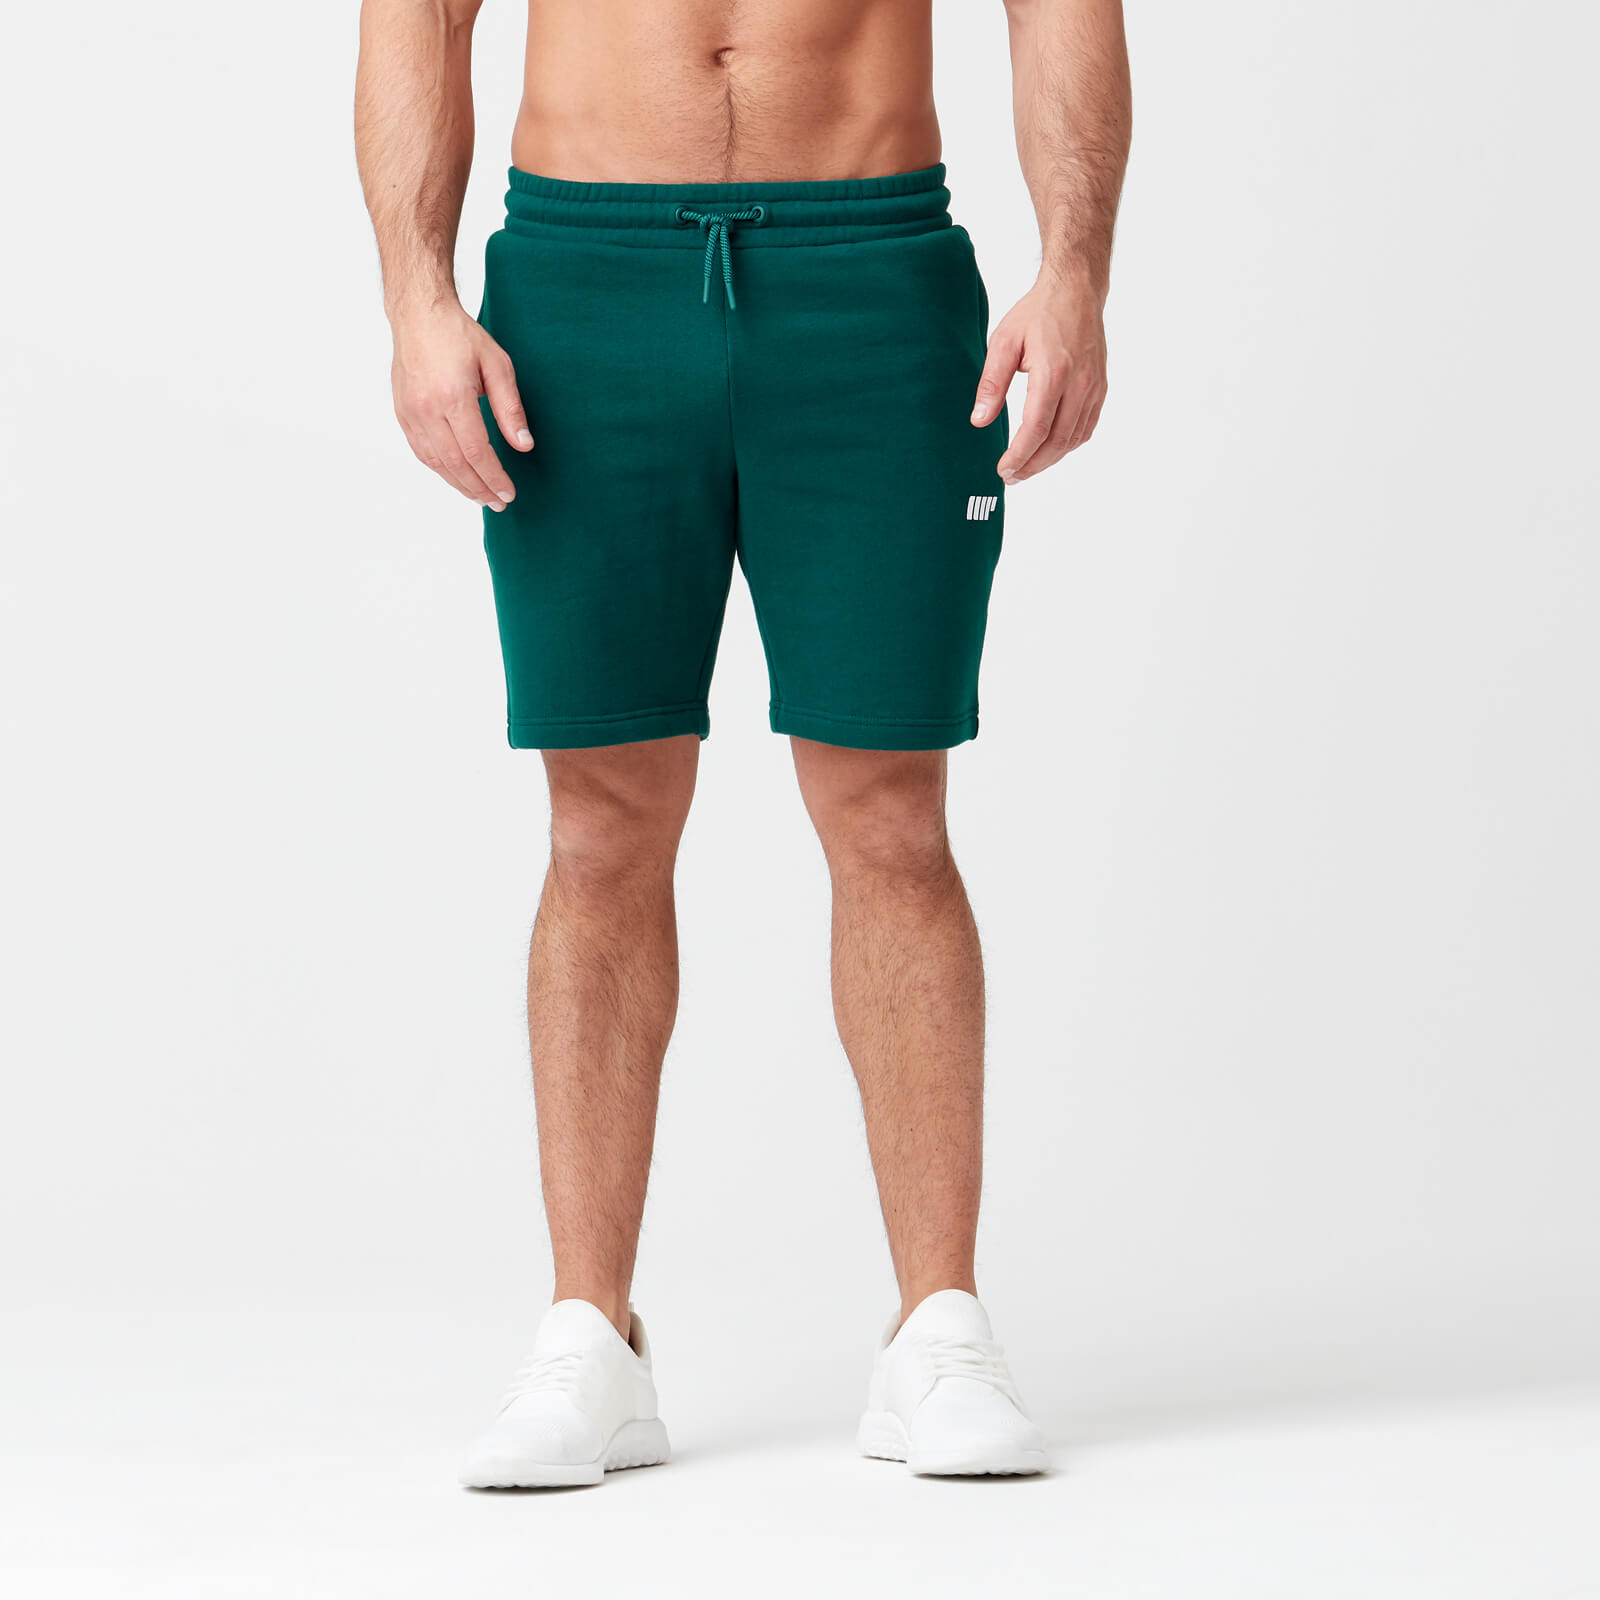 Myprotein Tru-Fit Zip Sweatshorts - Dark Green - S